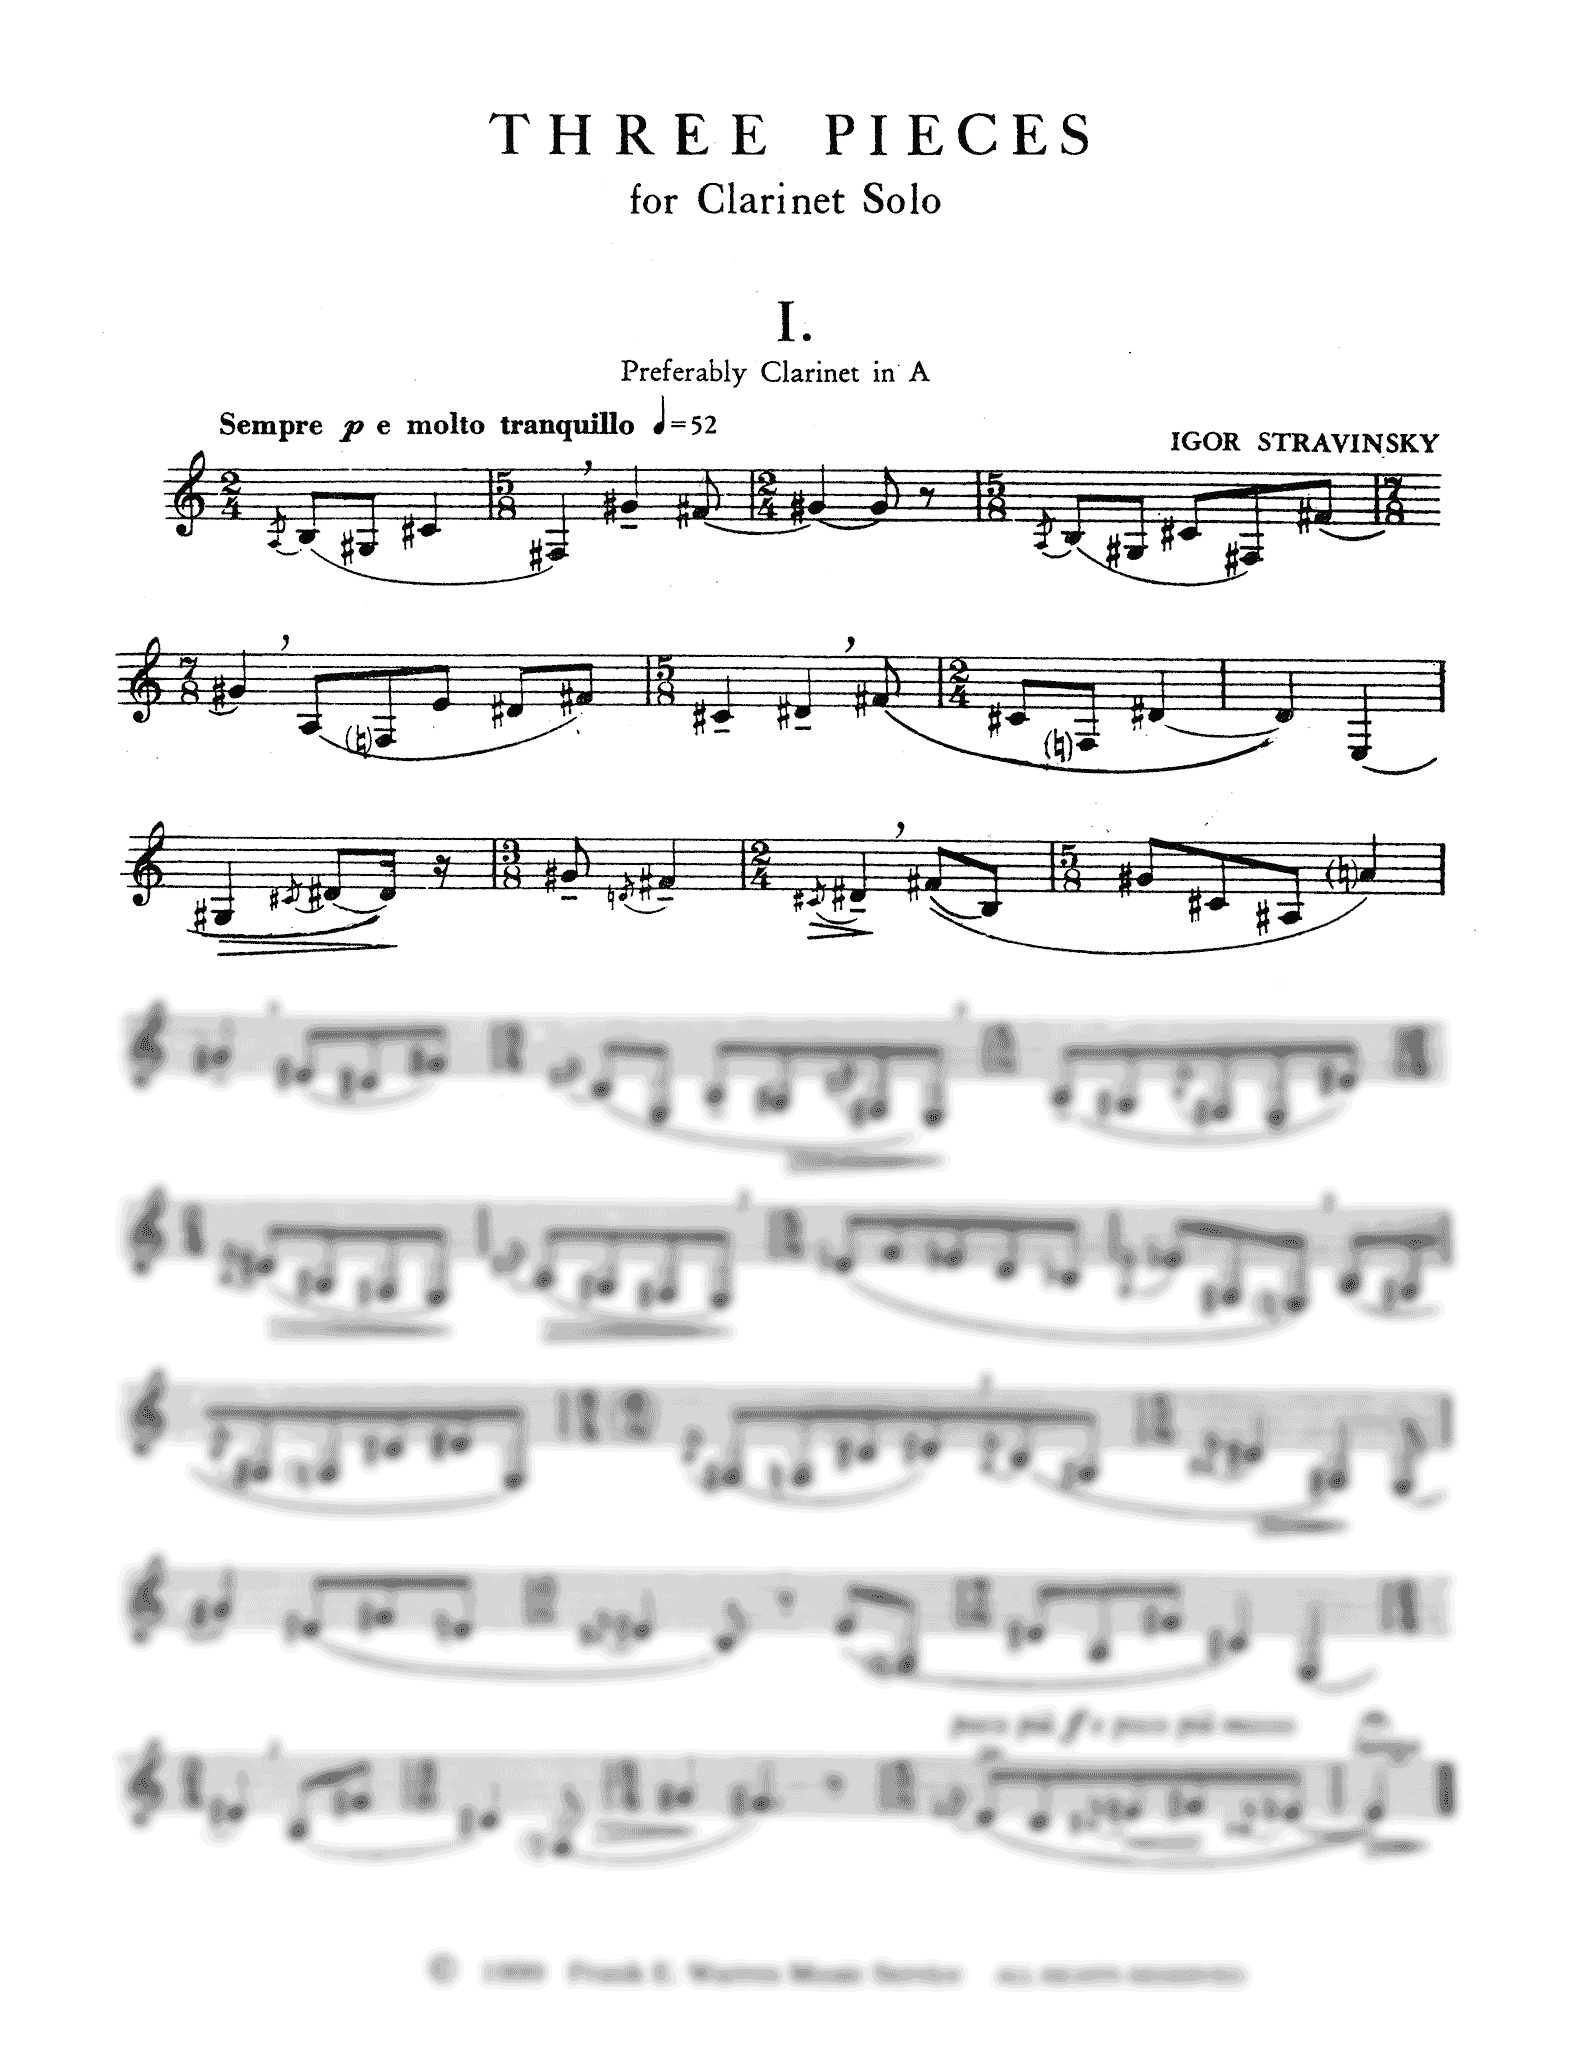 Three Pieces for Clarinet Solo Clarinet part, page 1